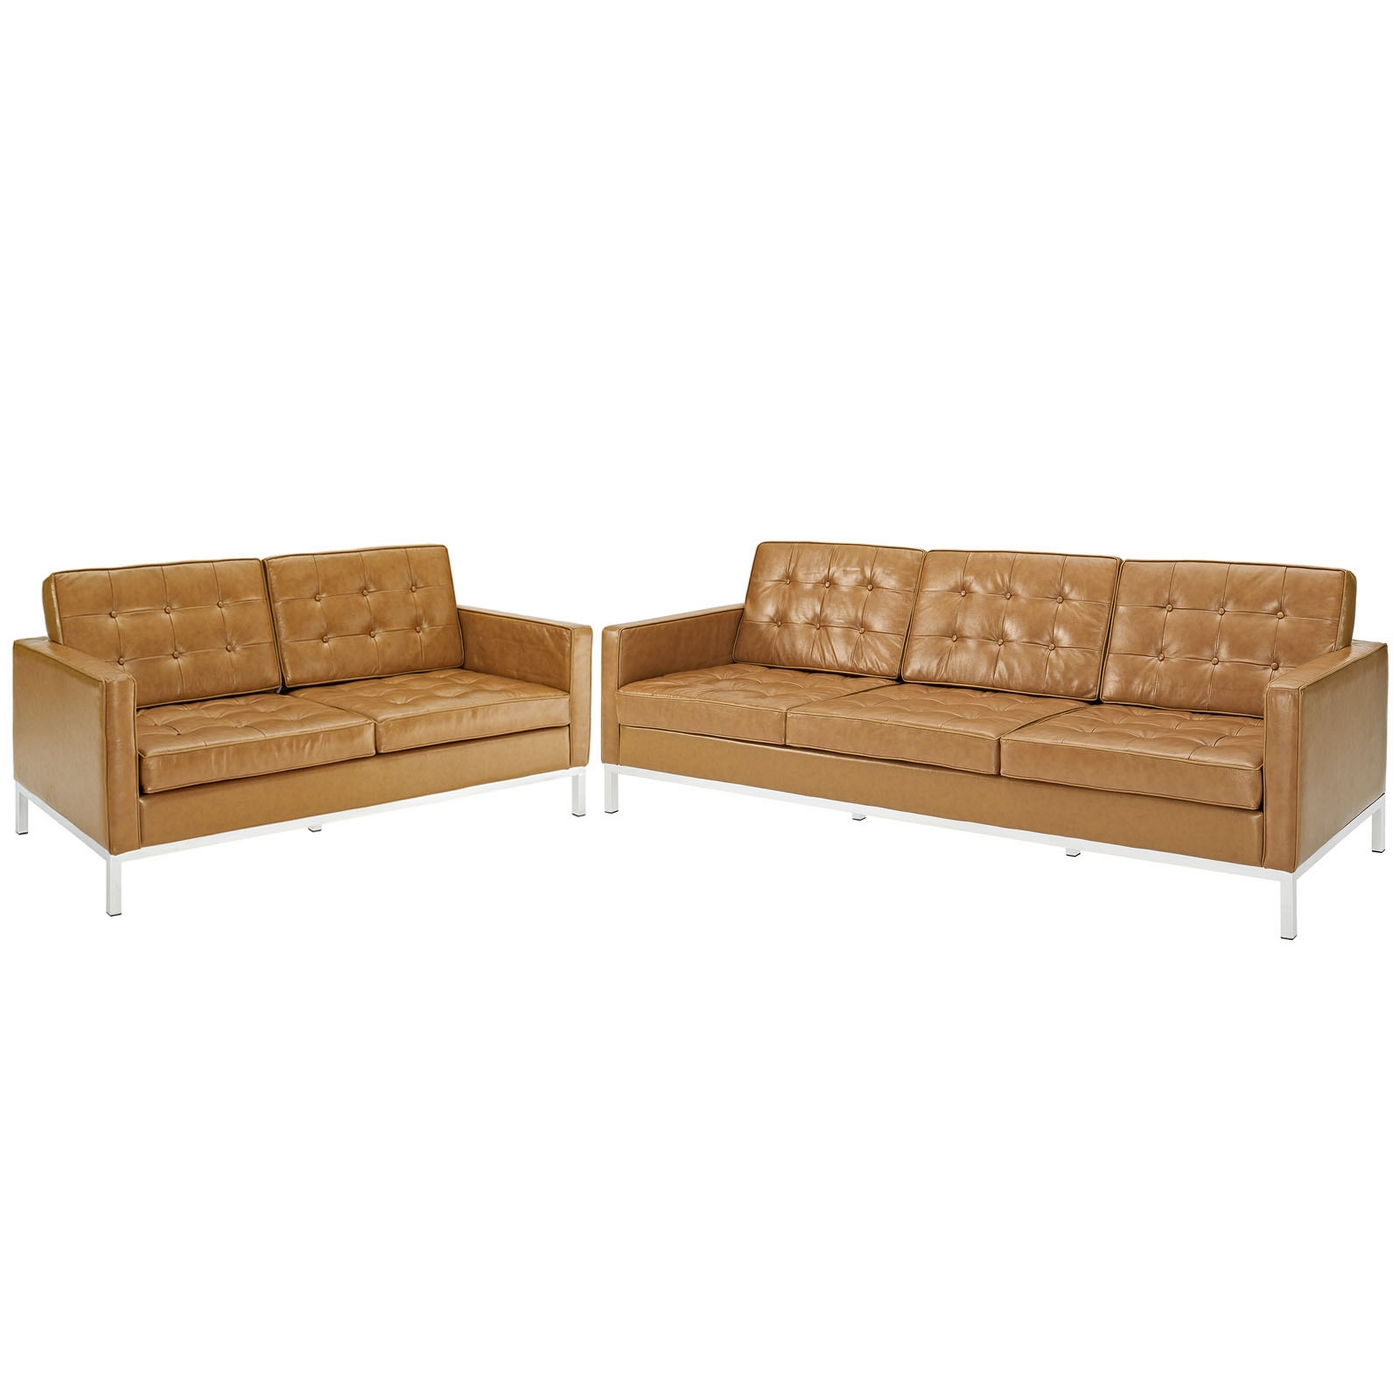 Loft contemporary 2pc button tufted leather sofa and for Tufted couch set